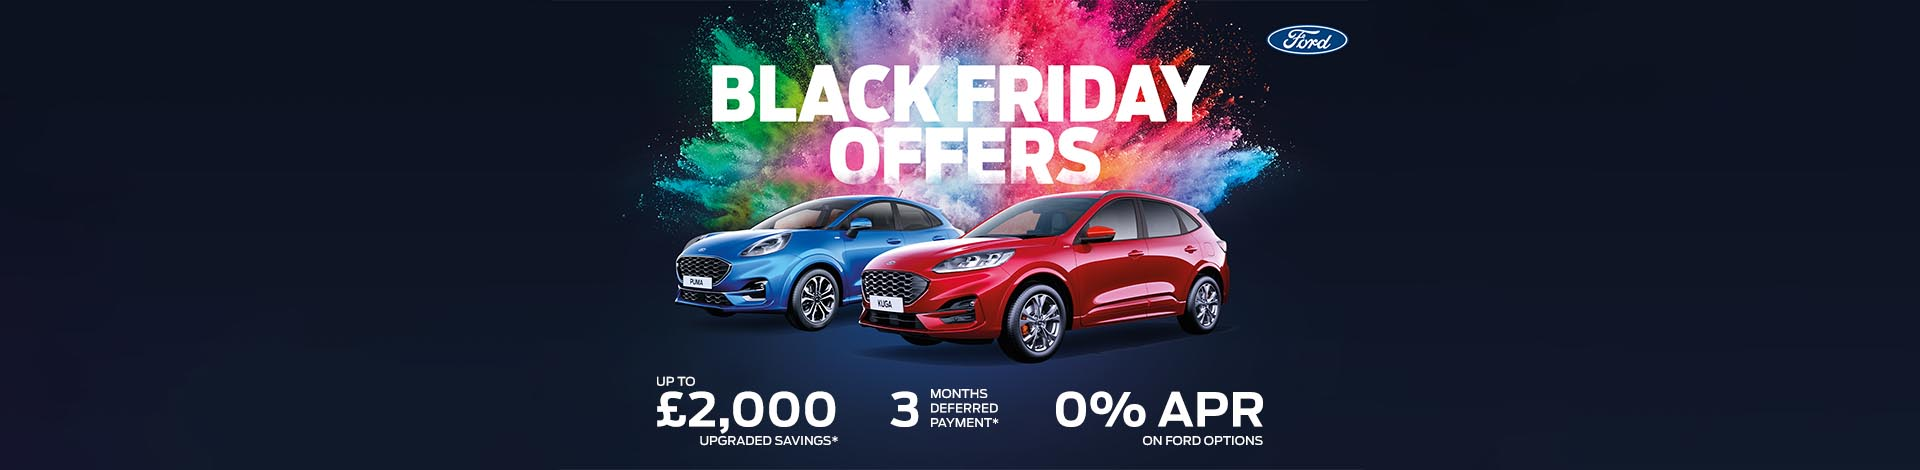 Ford Black Friday